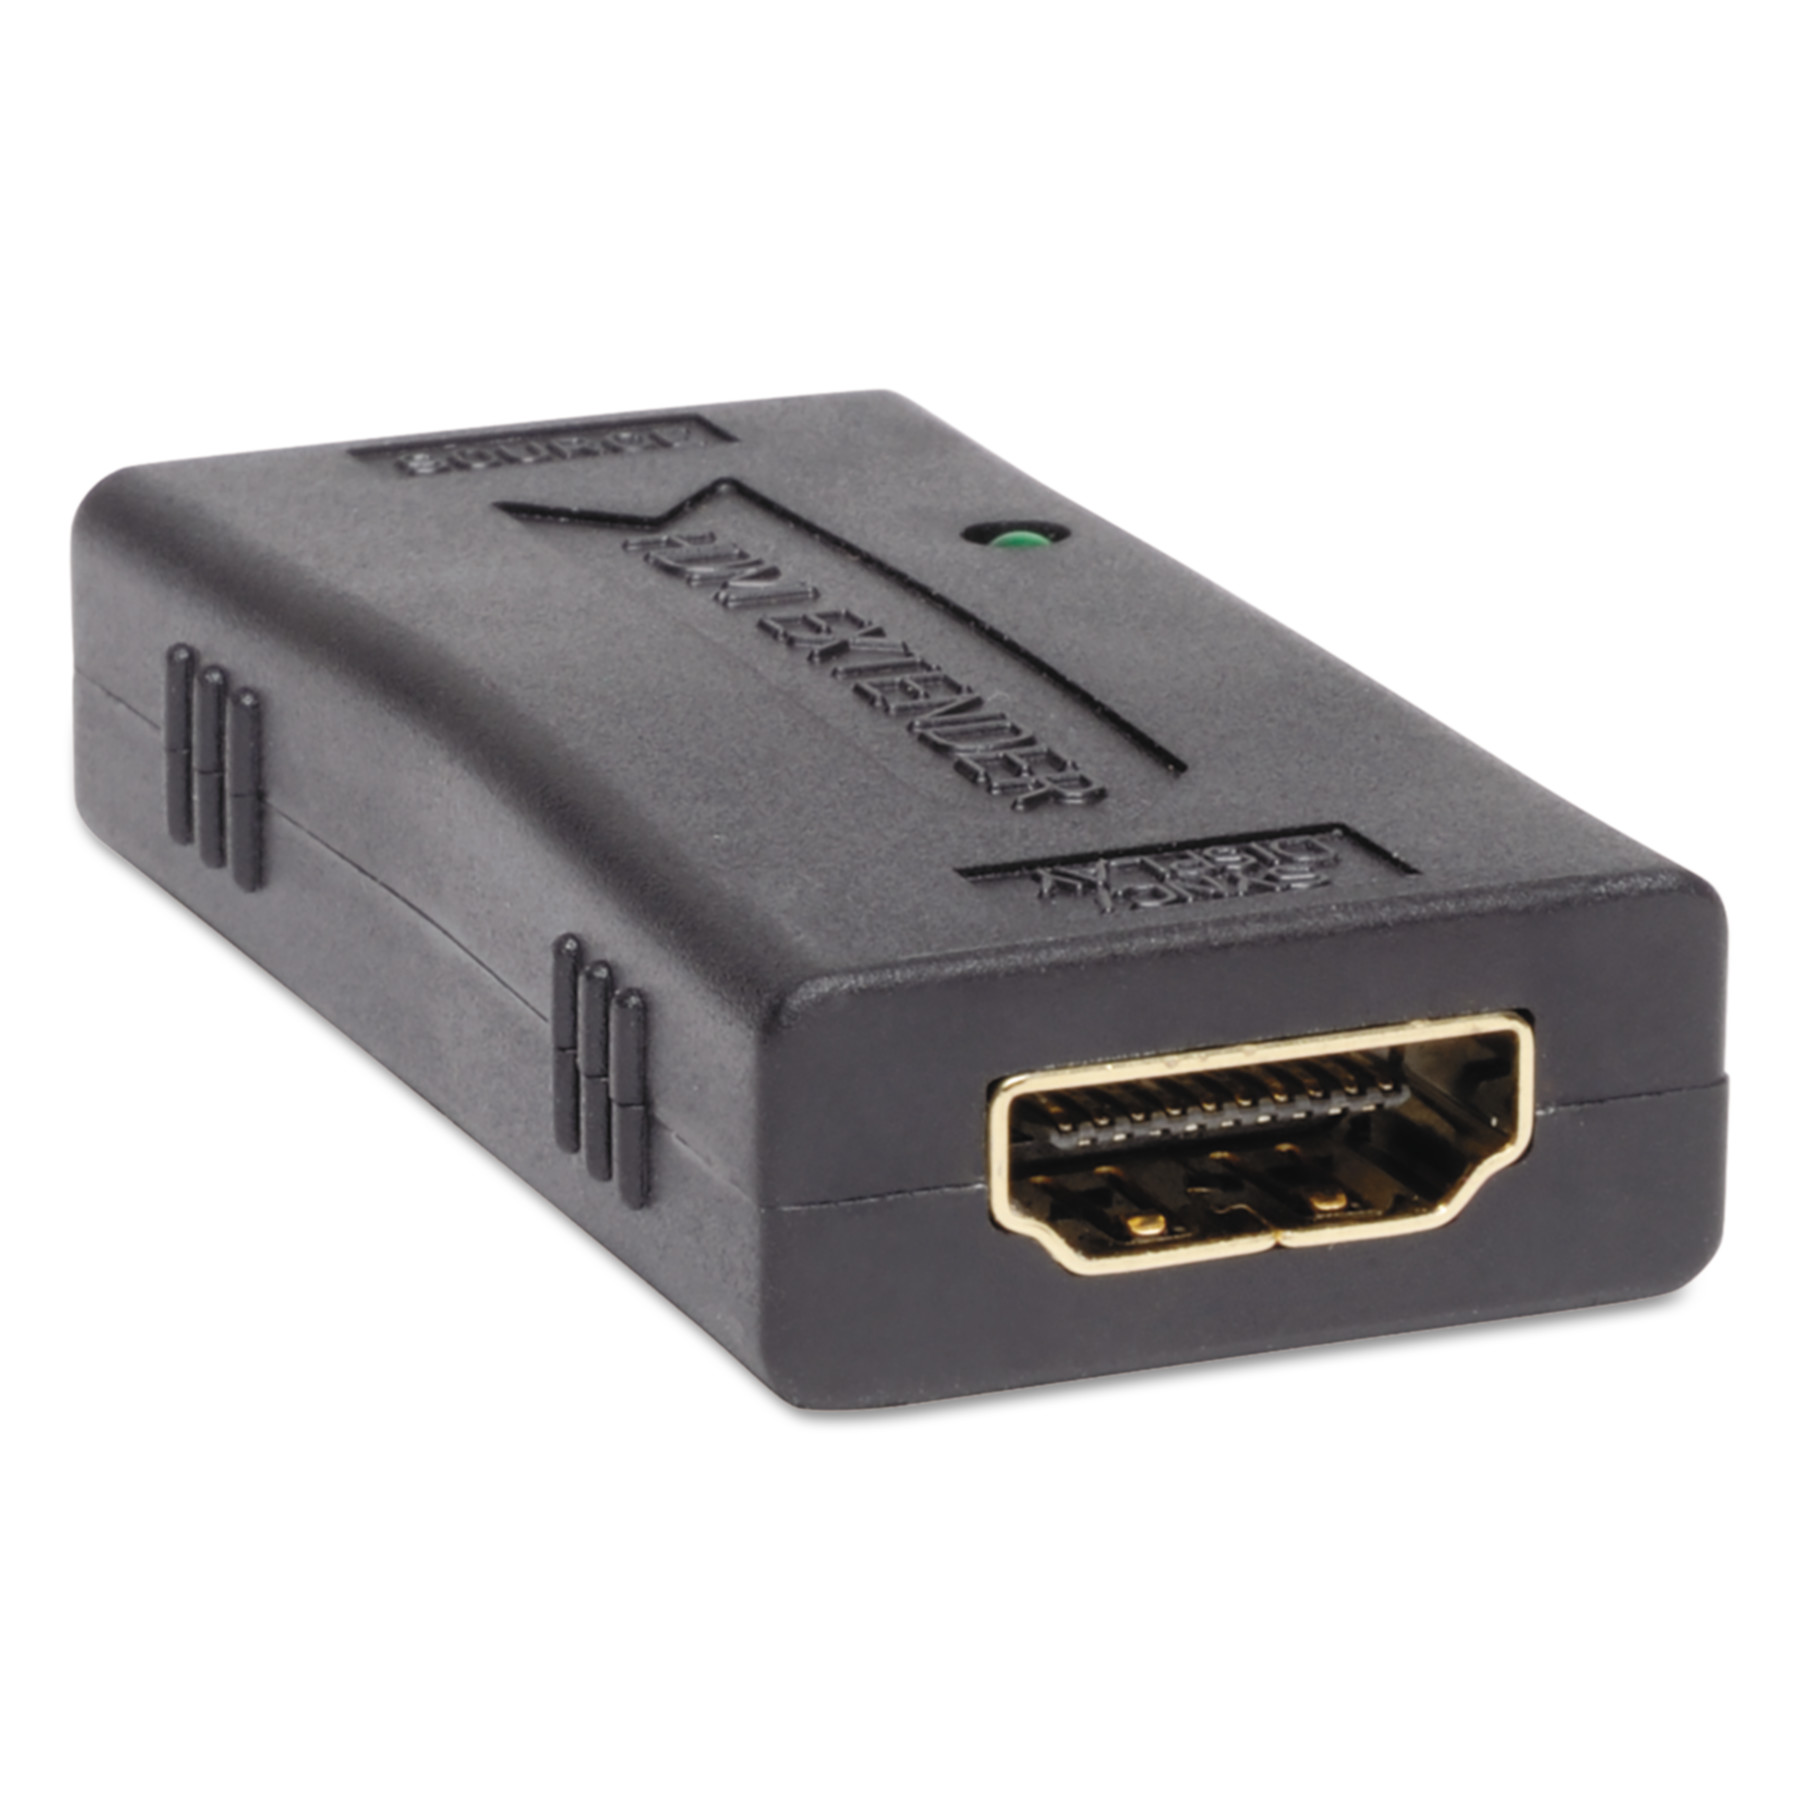 Tripp Lite HDMI Cable Signal Extender